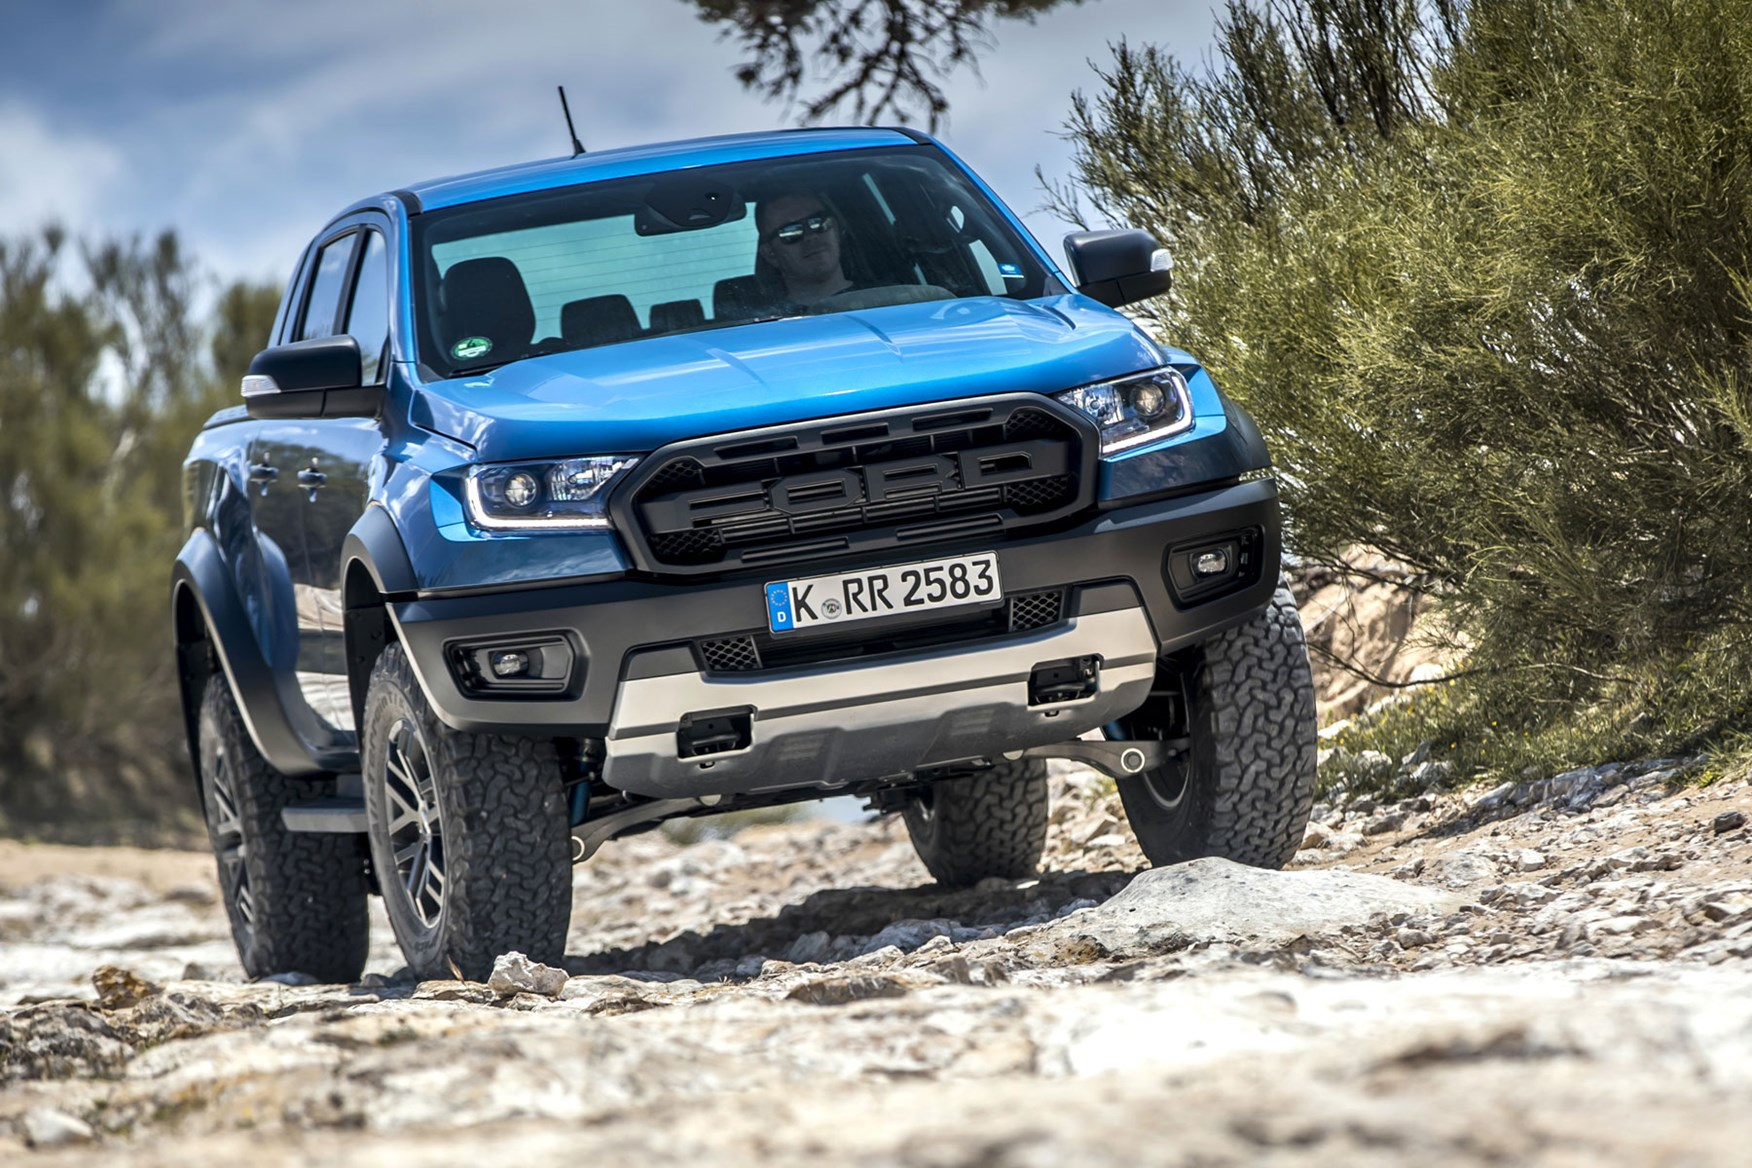 Ford Ranger Raptor high performance pickup truck - Performance Blue, front view, on rocks